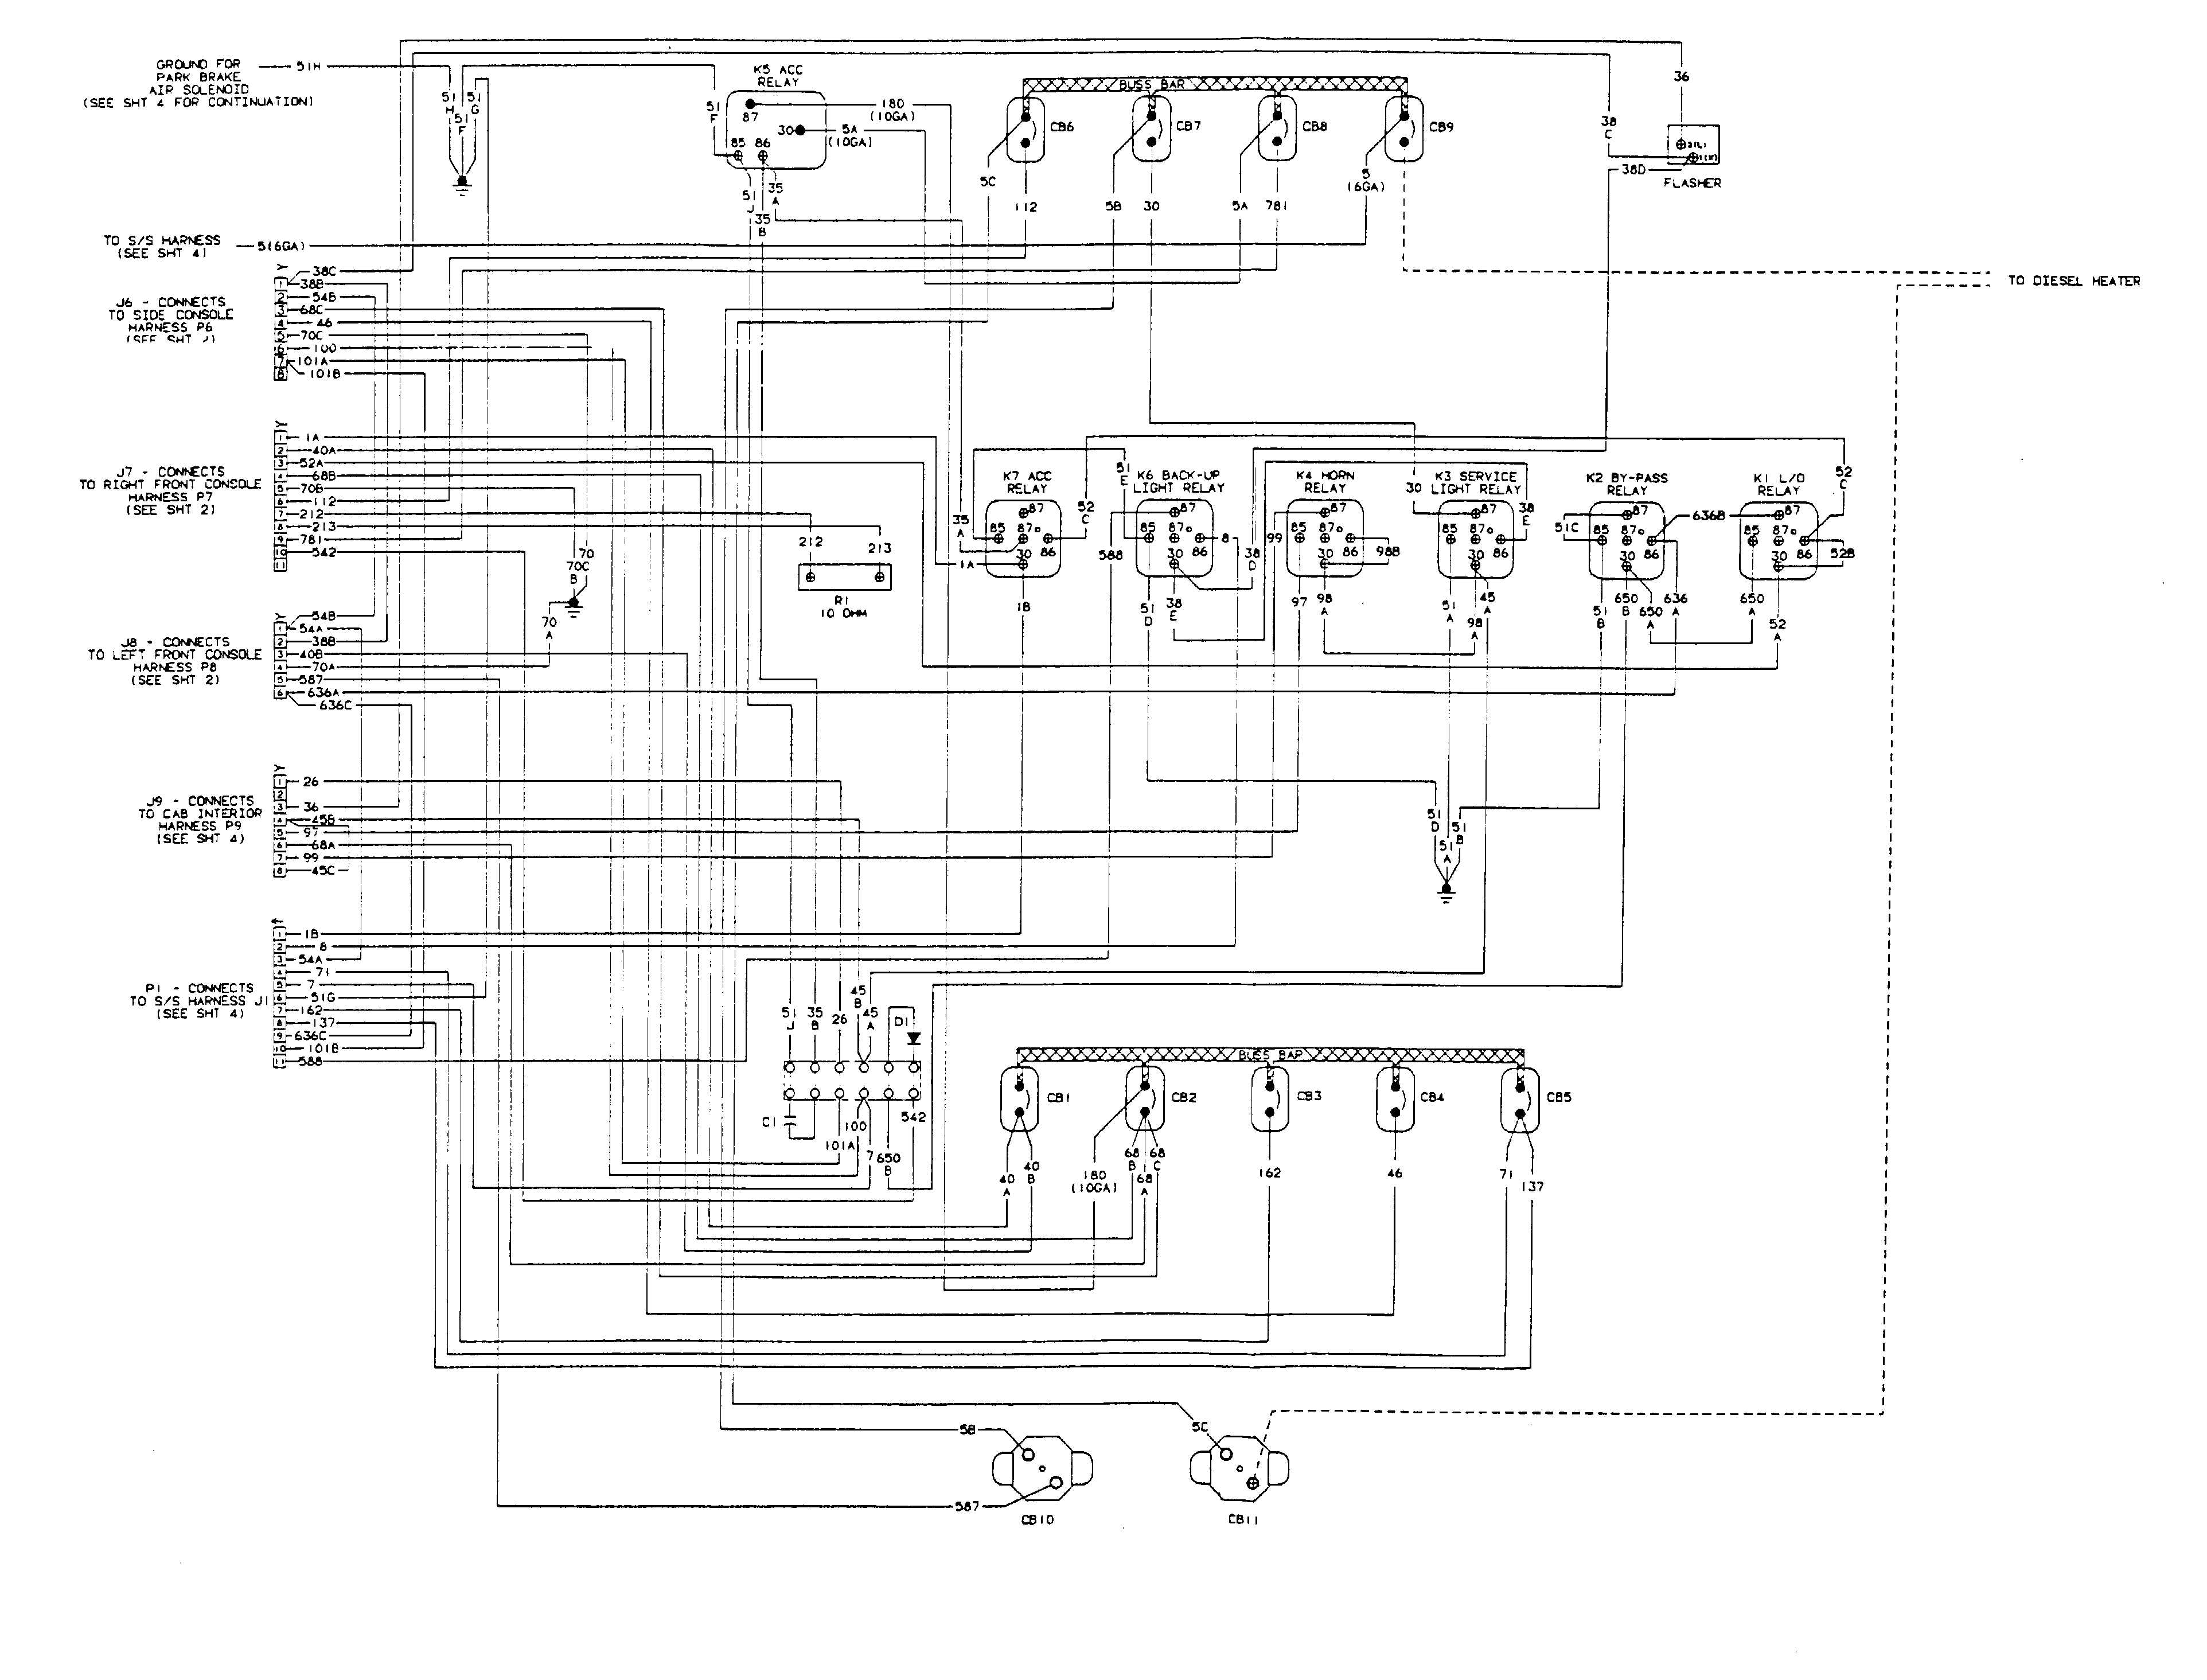 pittsburgh electric hoist wiring diagram Collection-Coffing Hoist Wiring Diagram Awesome Beautiful Overhead Crane Wiring Diagram Contemporary Electrical 5-t